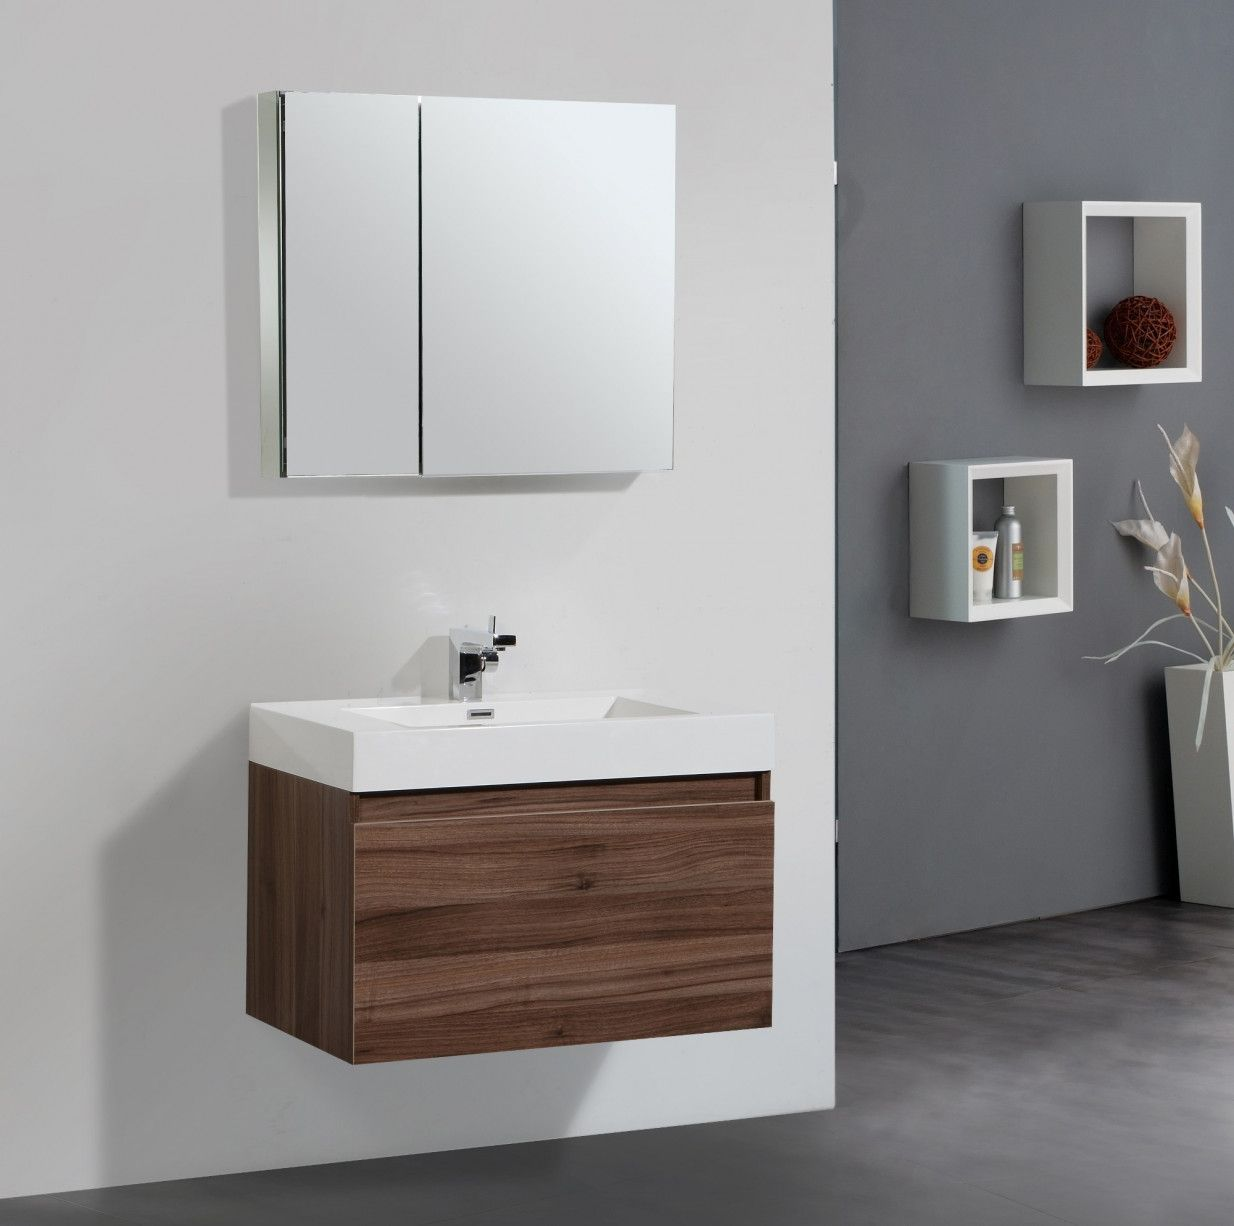 2019 Bathroom Cabinets Tampa   Best Interior Wall Paint Check More At  Http://